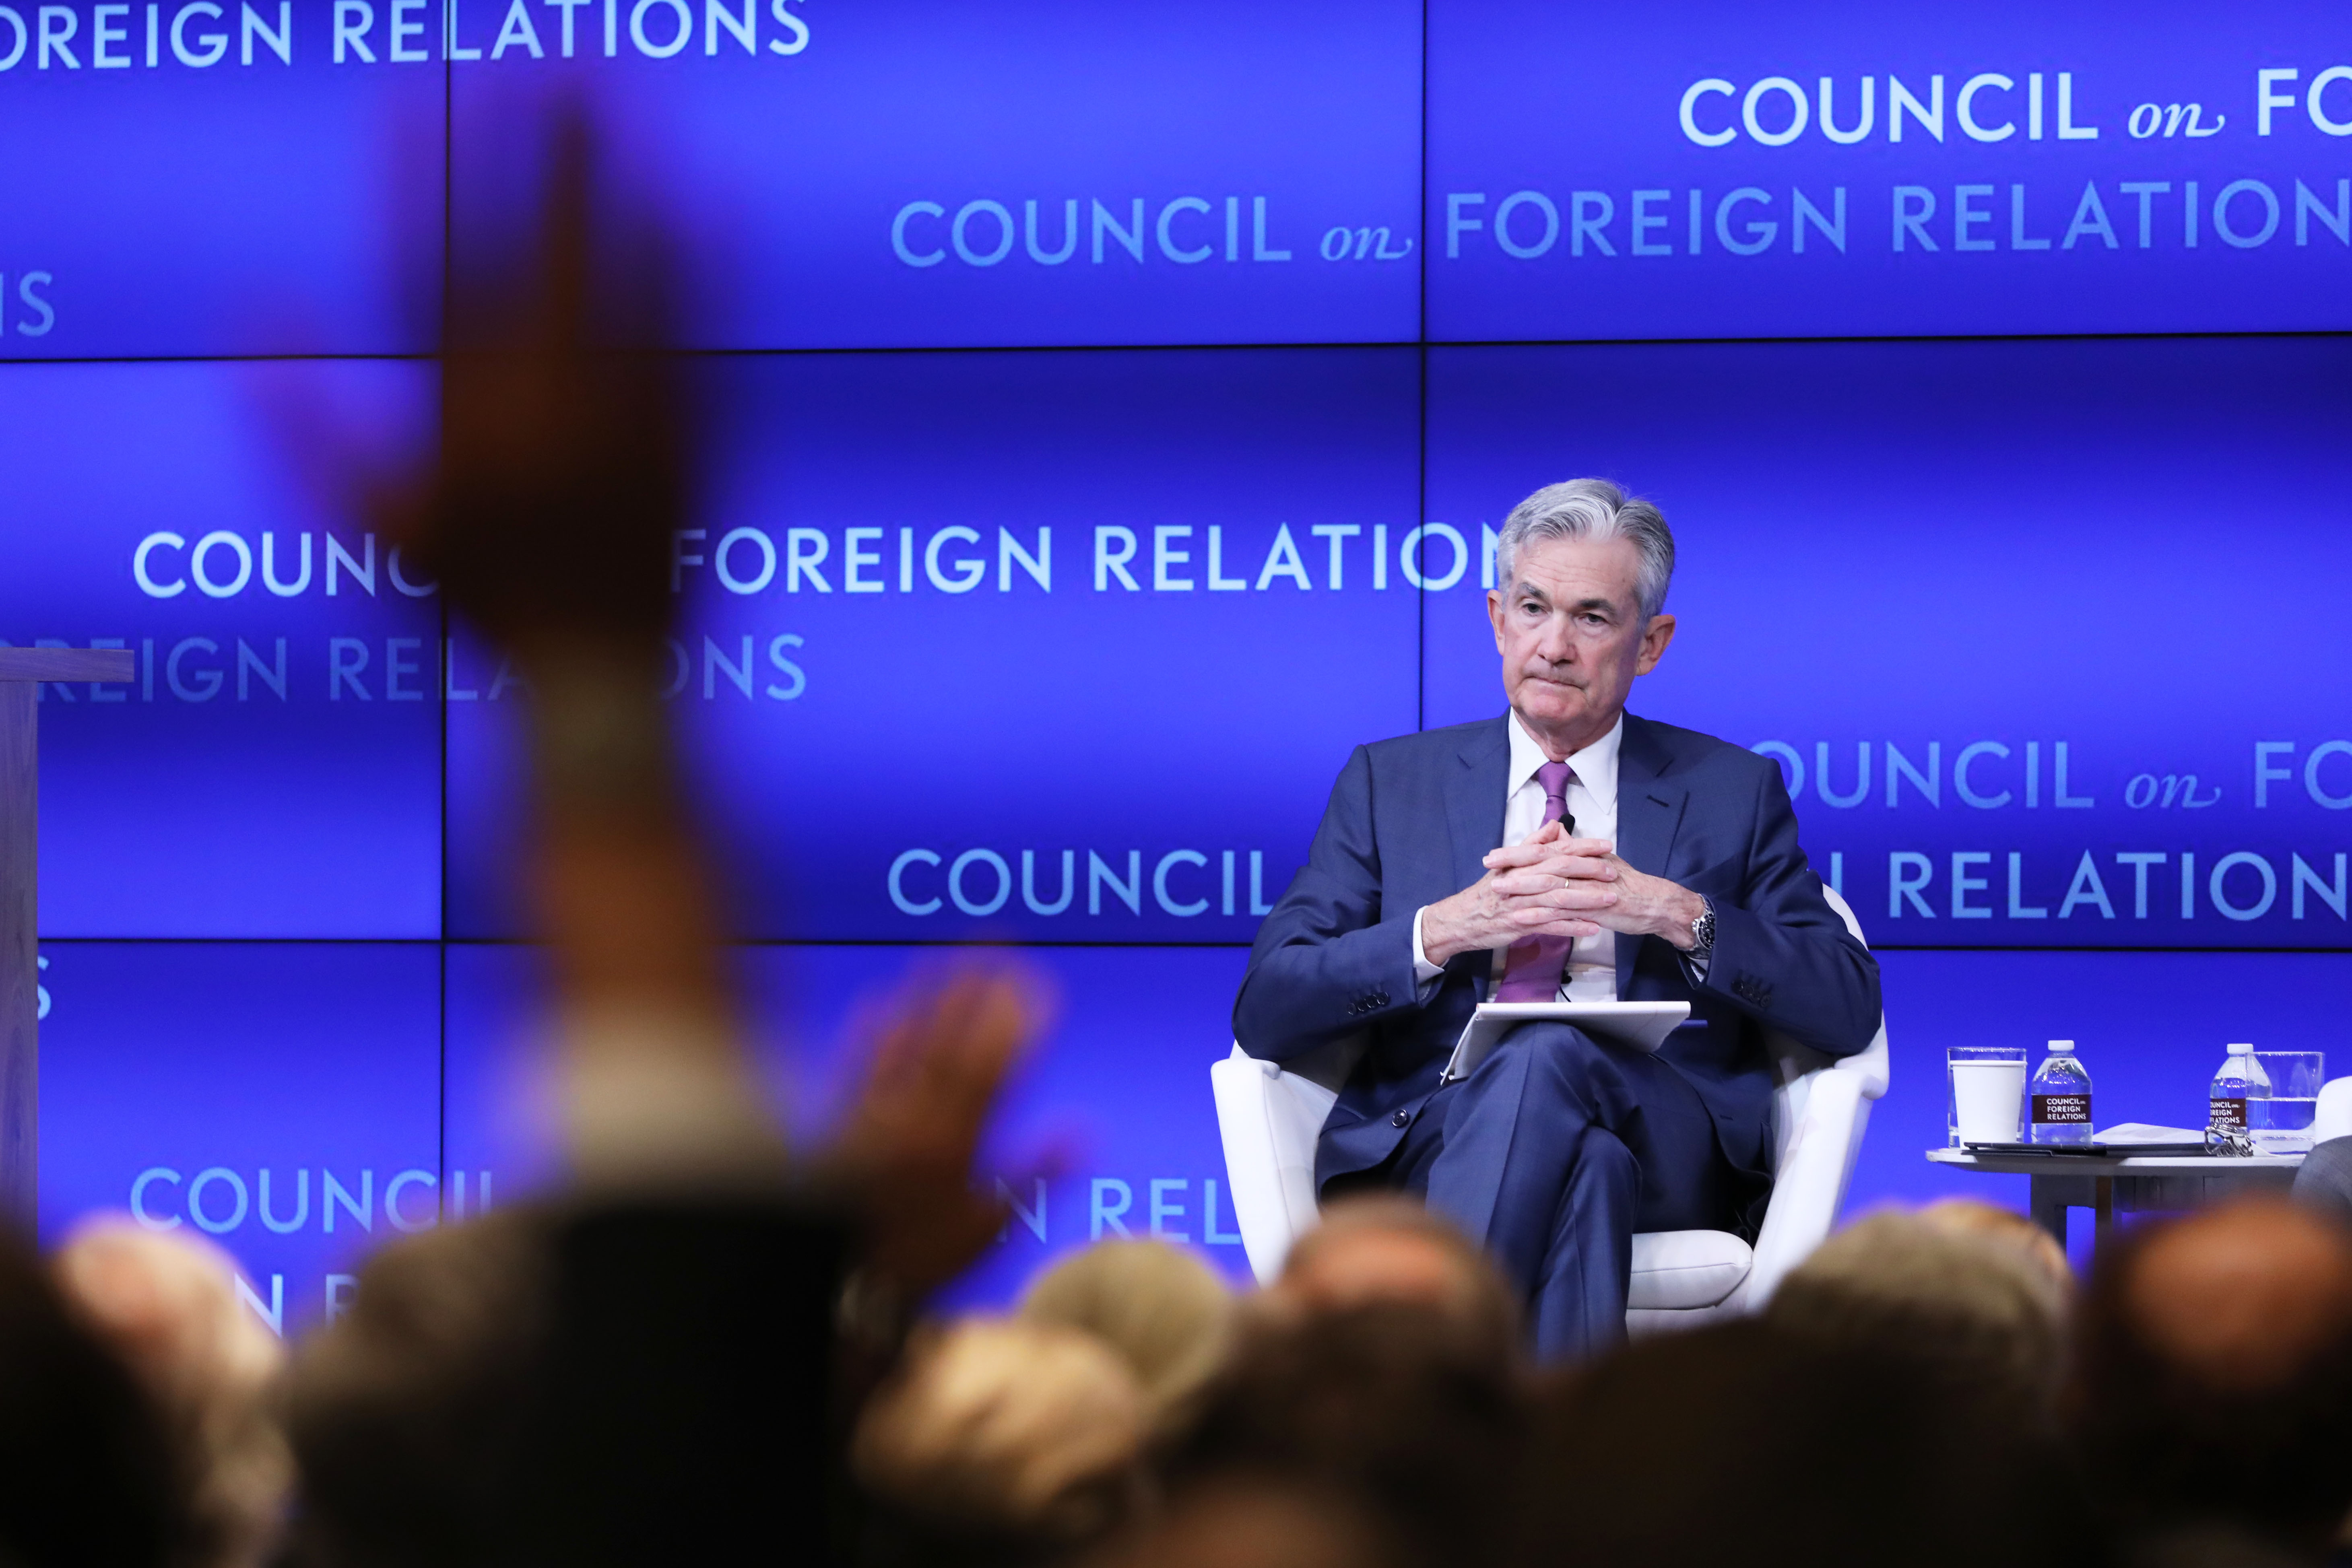 Jerome Powell (left), chairman of the Board of Governors of the Federal Reserve, takes questions while speaking in conversation with Neil Irwin of the New York Times at the Council on Foreign Relations.